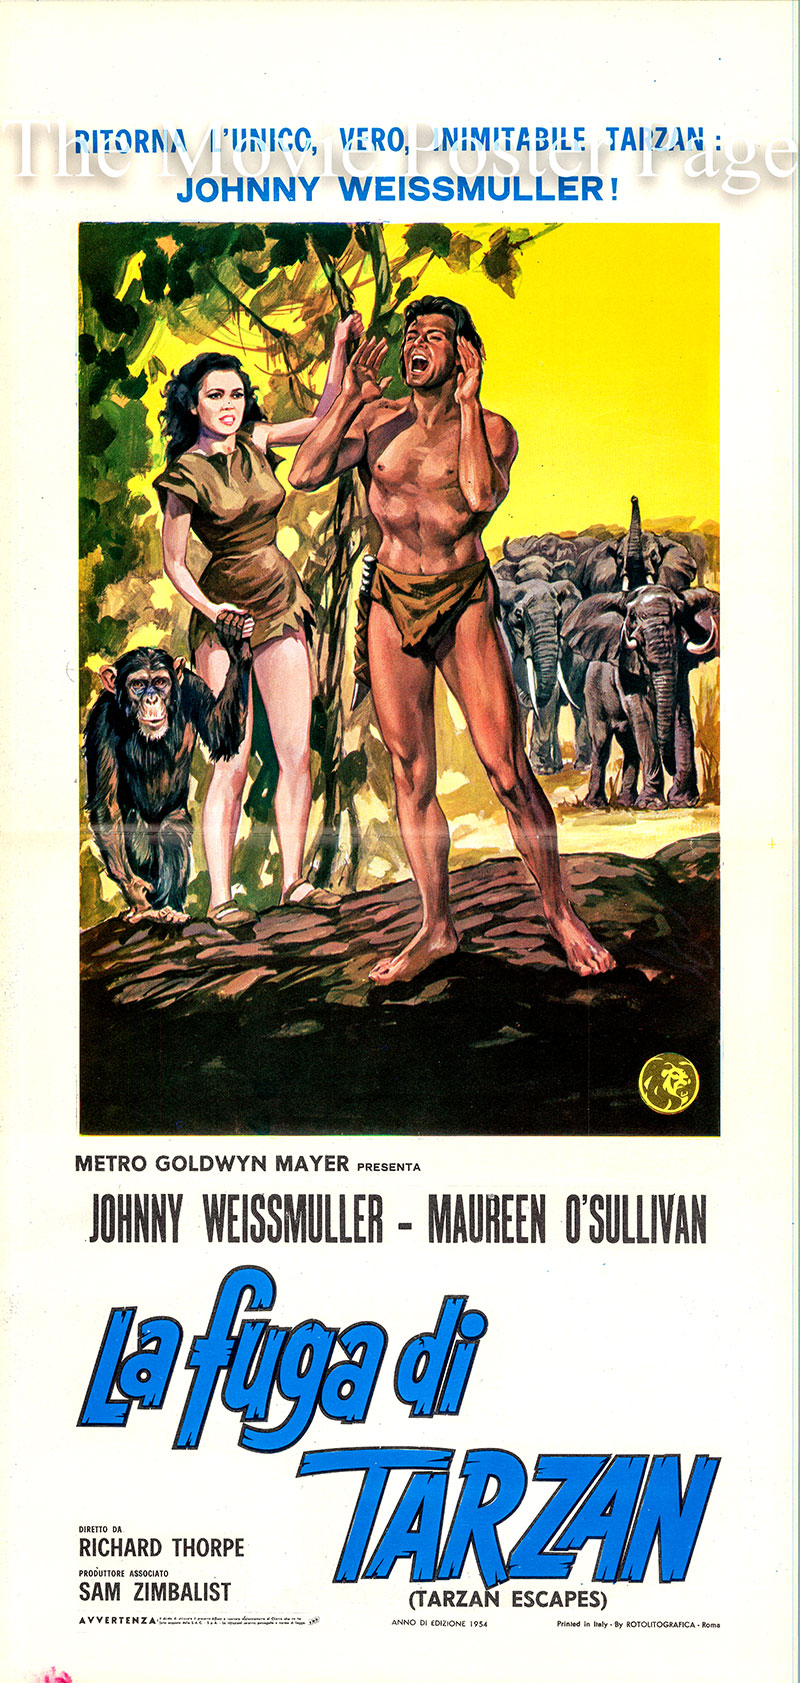 Pictured is an Italian locandina poster for a 1954 rererelease of the 1936 Richard Thorpe film Tarzan Escapes starring Johnny Weissmuller as Tarzan.